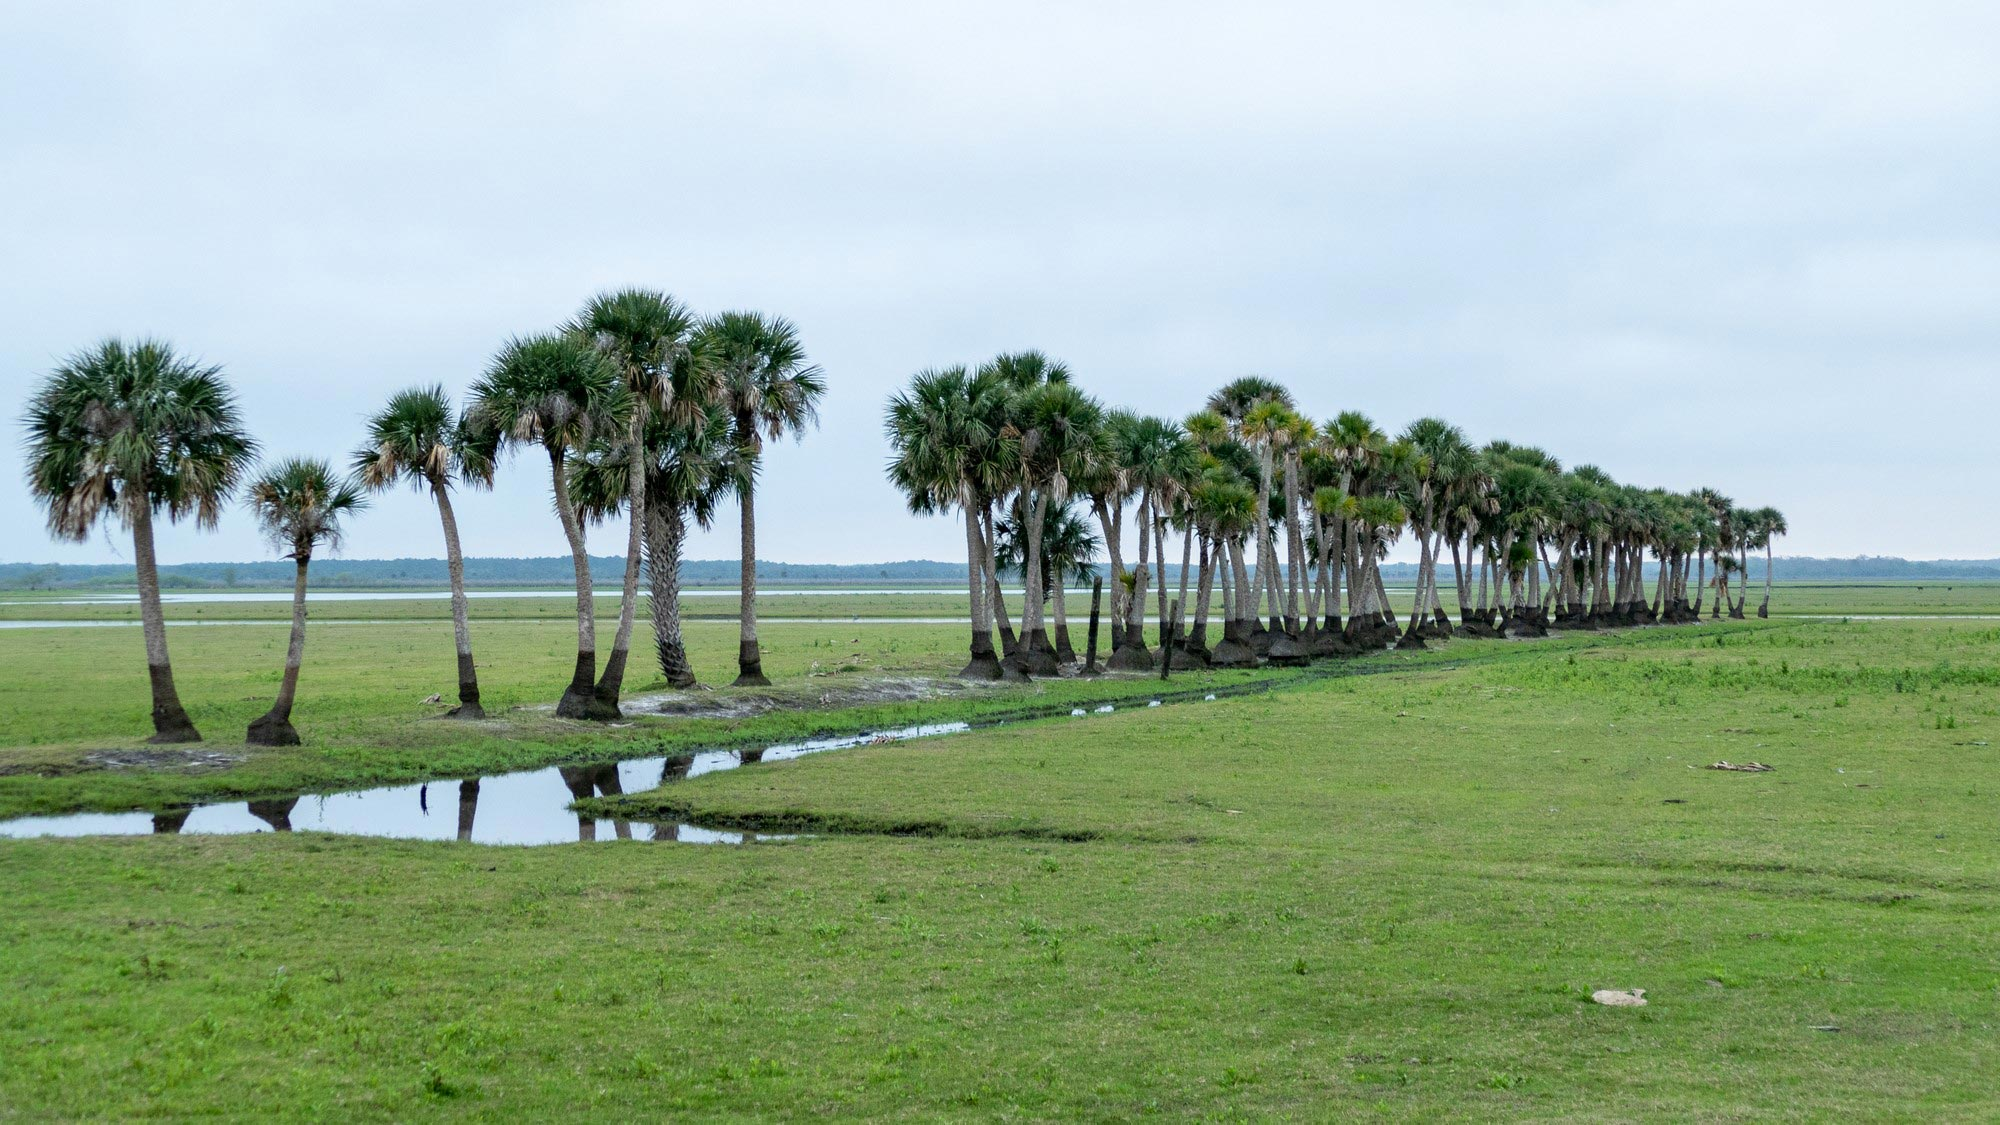 A row of palm trees standing by a stream